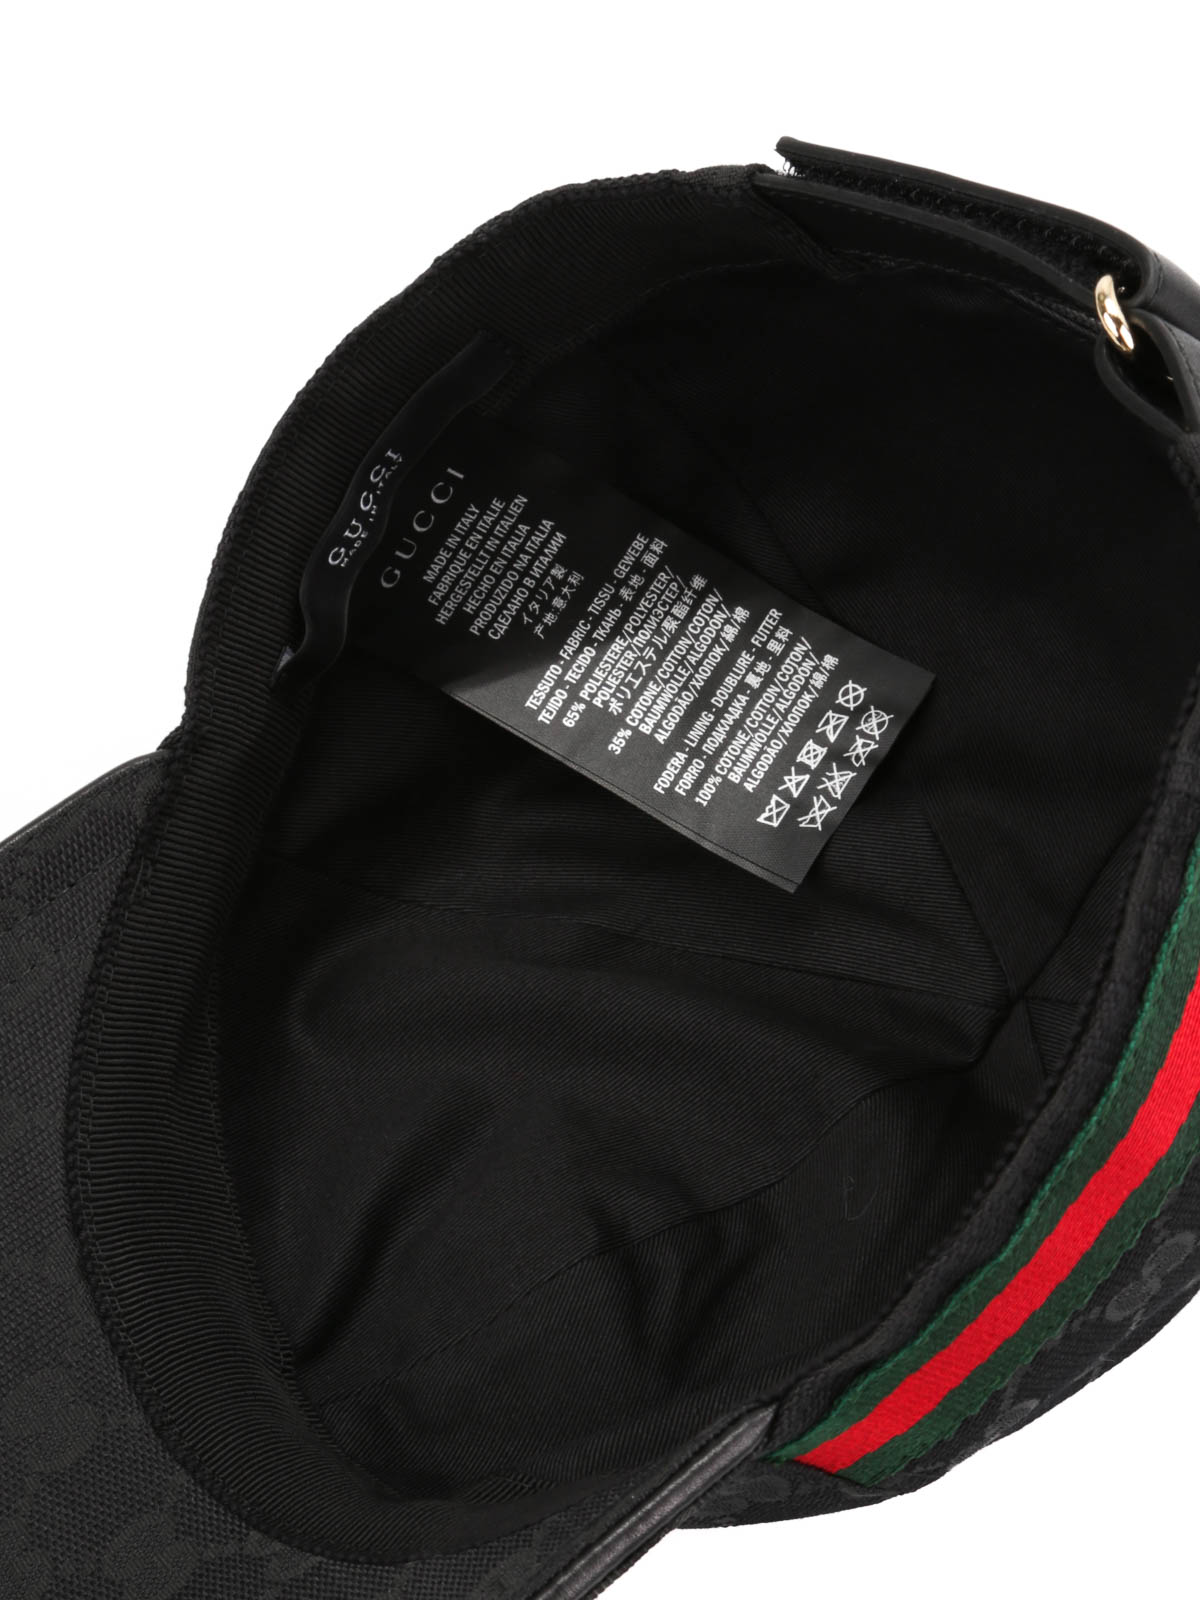 gg canvas baseball hat by gucci hats caps ikrix. Black Bedroom Furniture Sets. Home Design Ideas